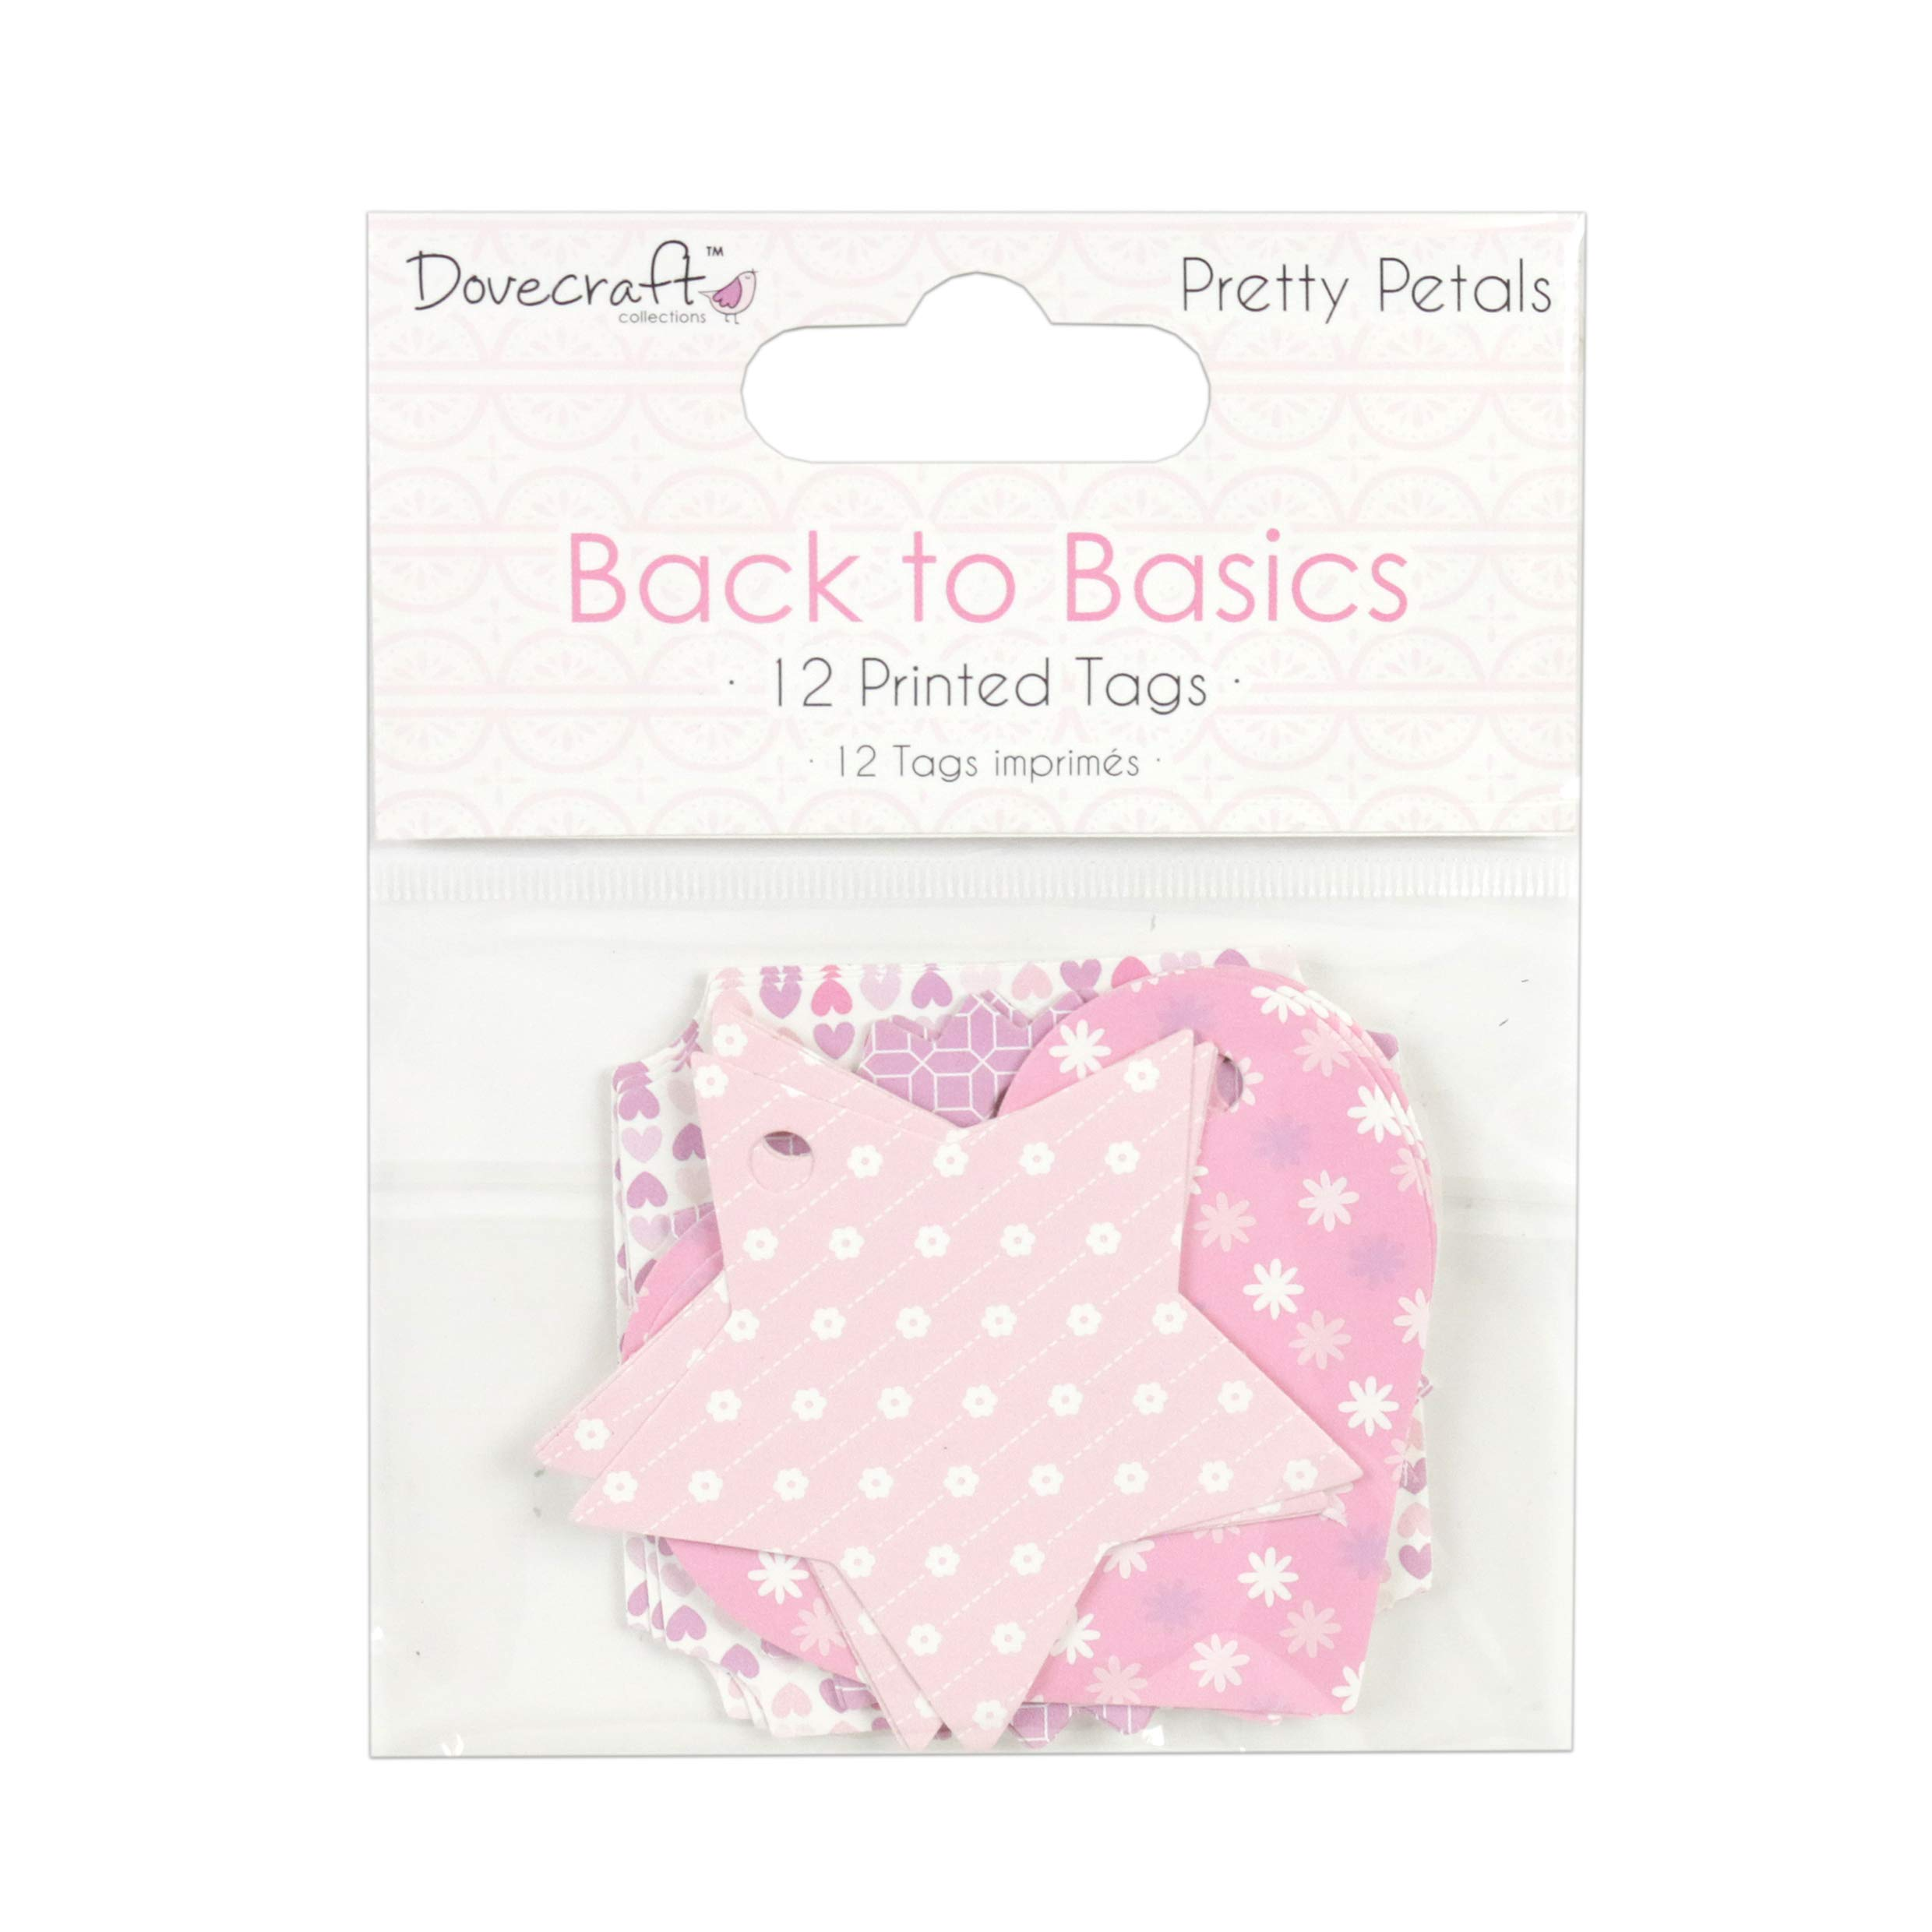 Dovecraft Back to Basics Pretty Petals Printed Tags, Multicolour, 1